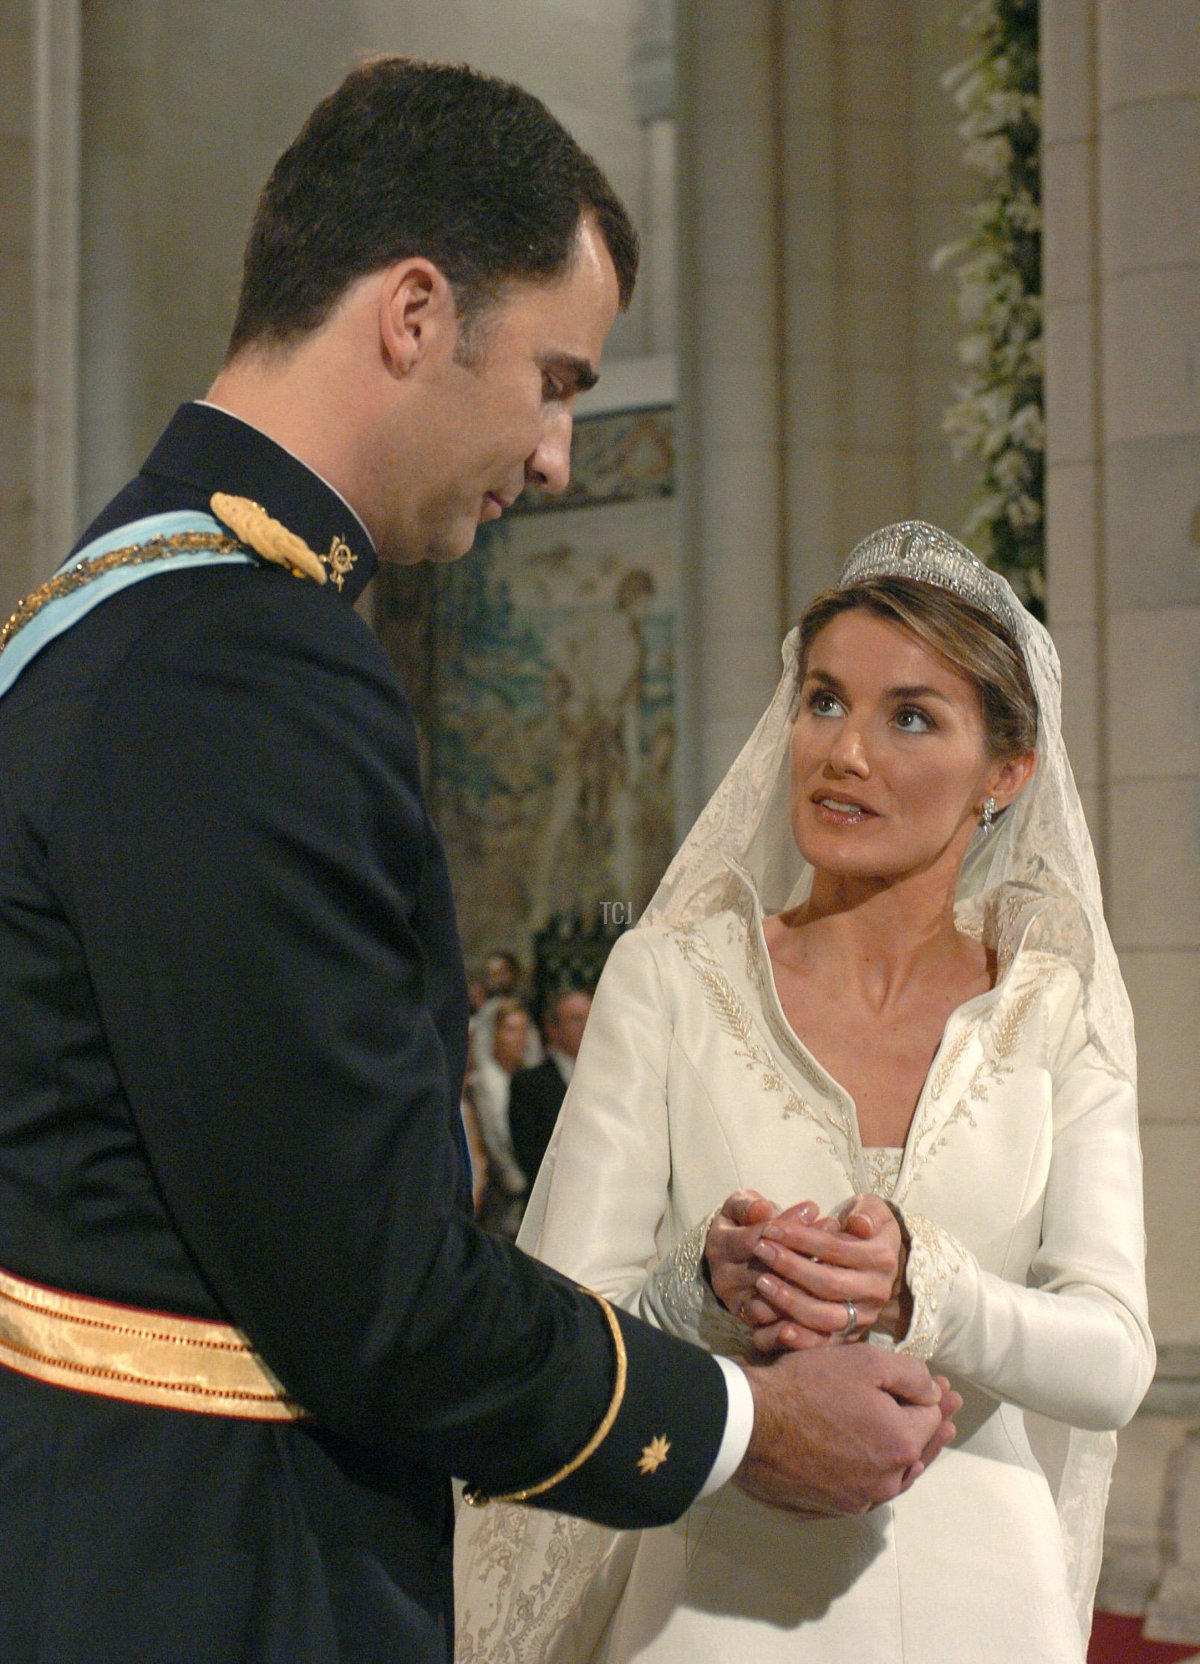 Spain's Crown Prince Felipe de Bourbon stands next to bride Letizia Ortiz as they marry in Almudena cathedral May 22, 2004 in Madrid